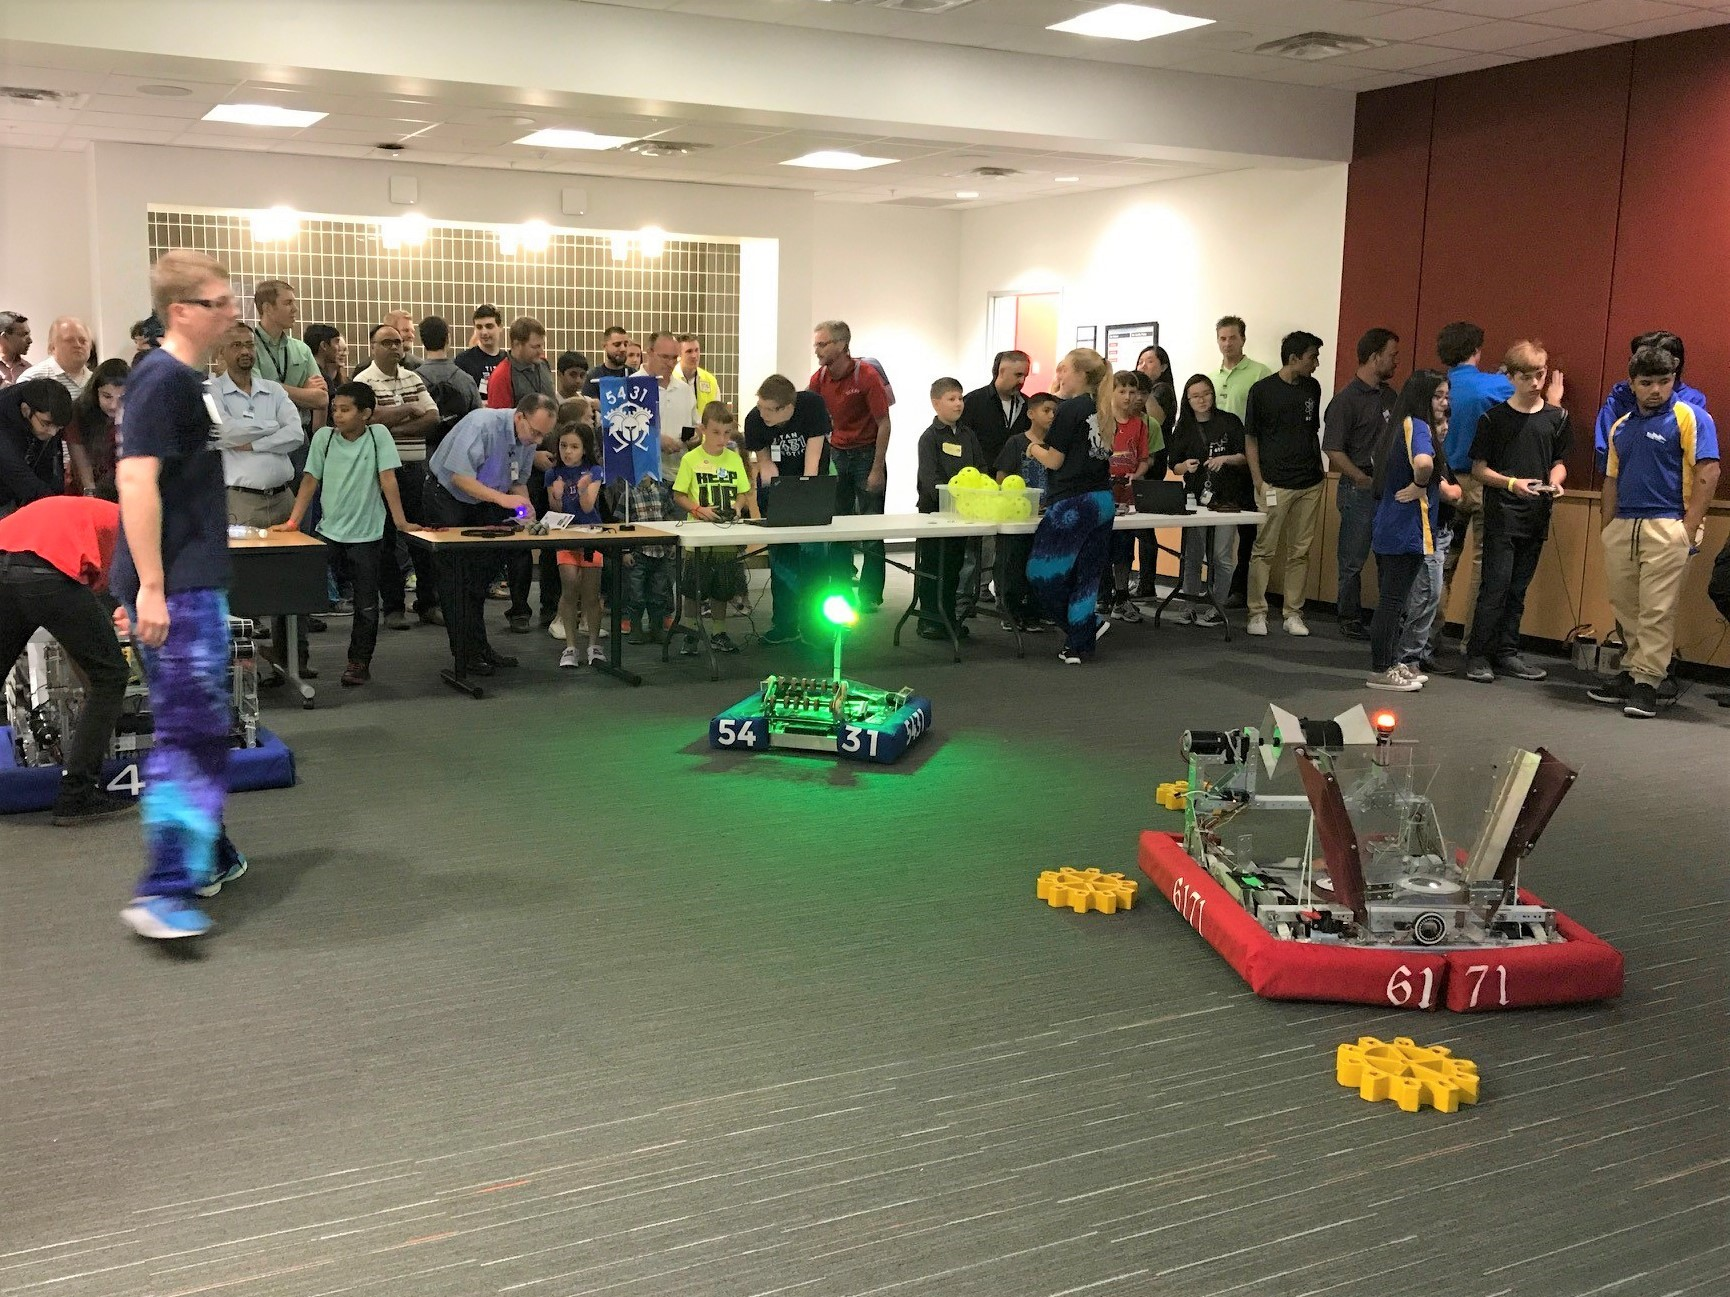 Robotics teams from Academy High School and Plano Senior High